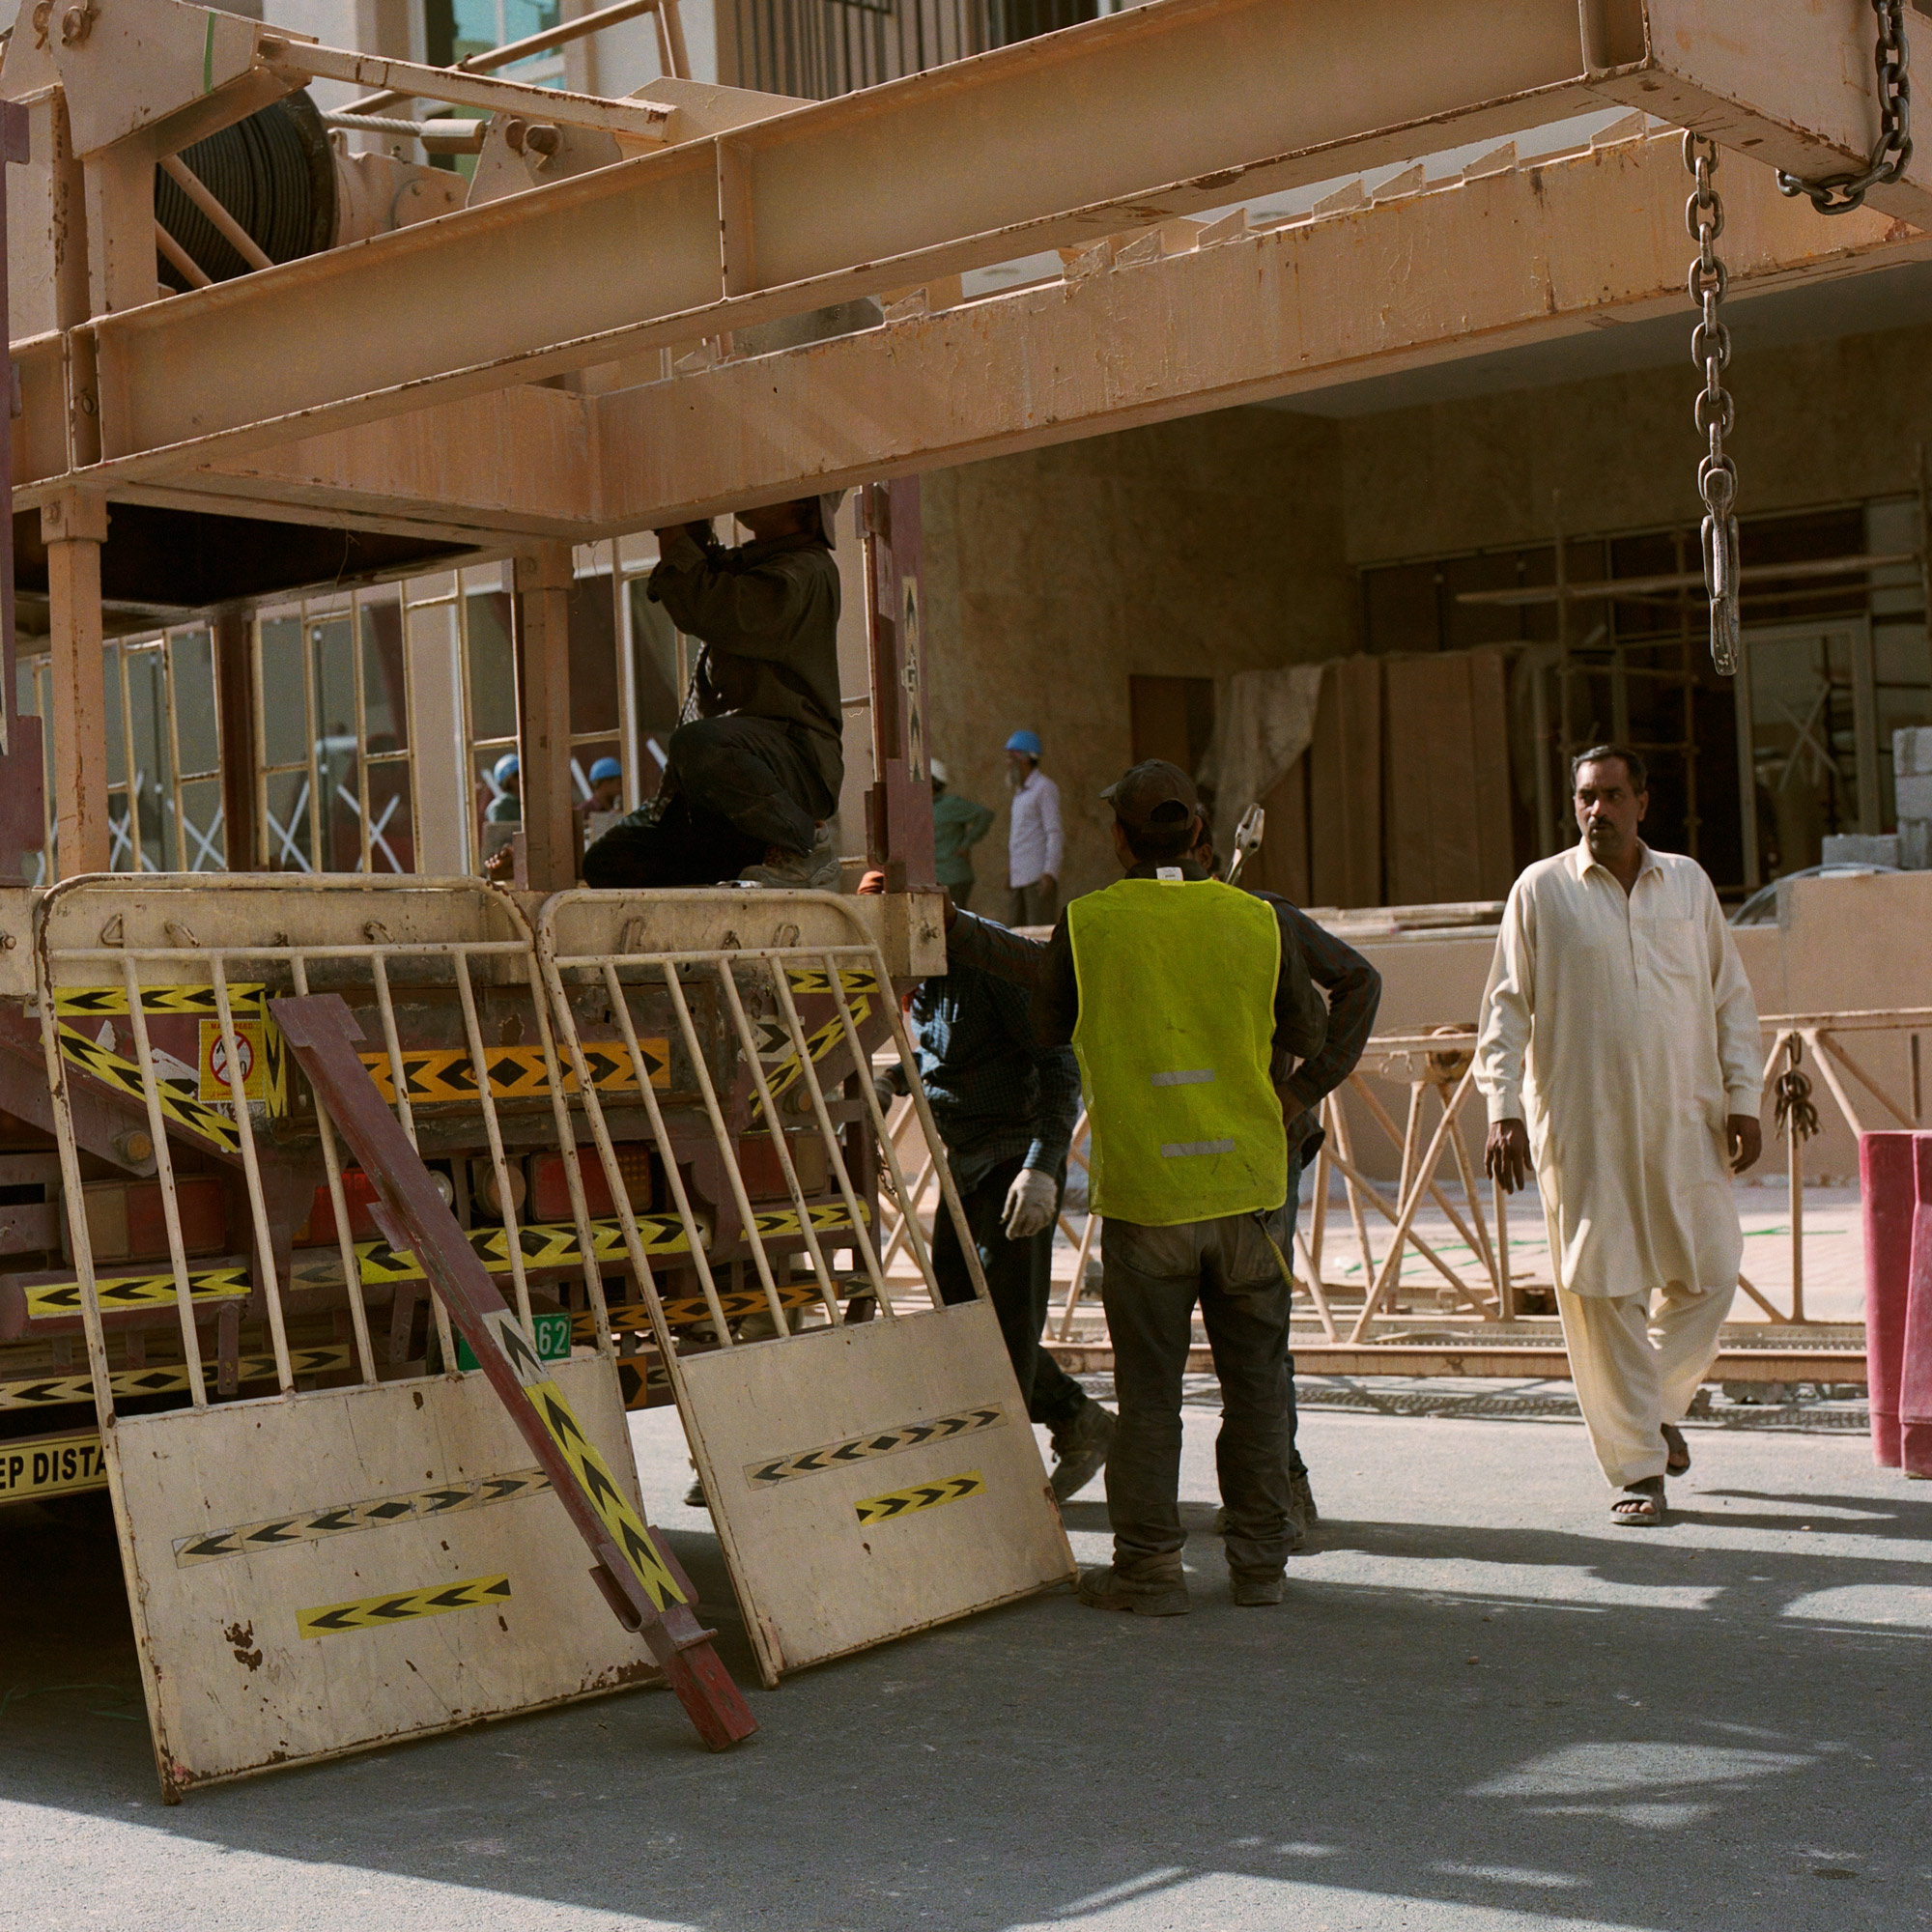 Construction workers at work on site in Dubai, Dubai Labourers